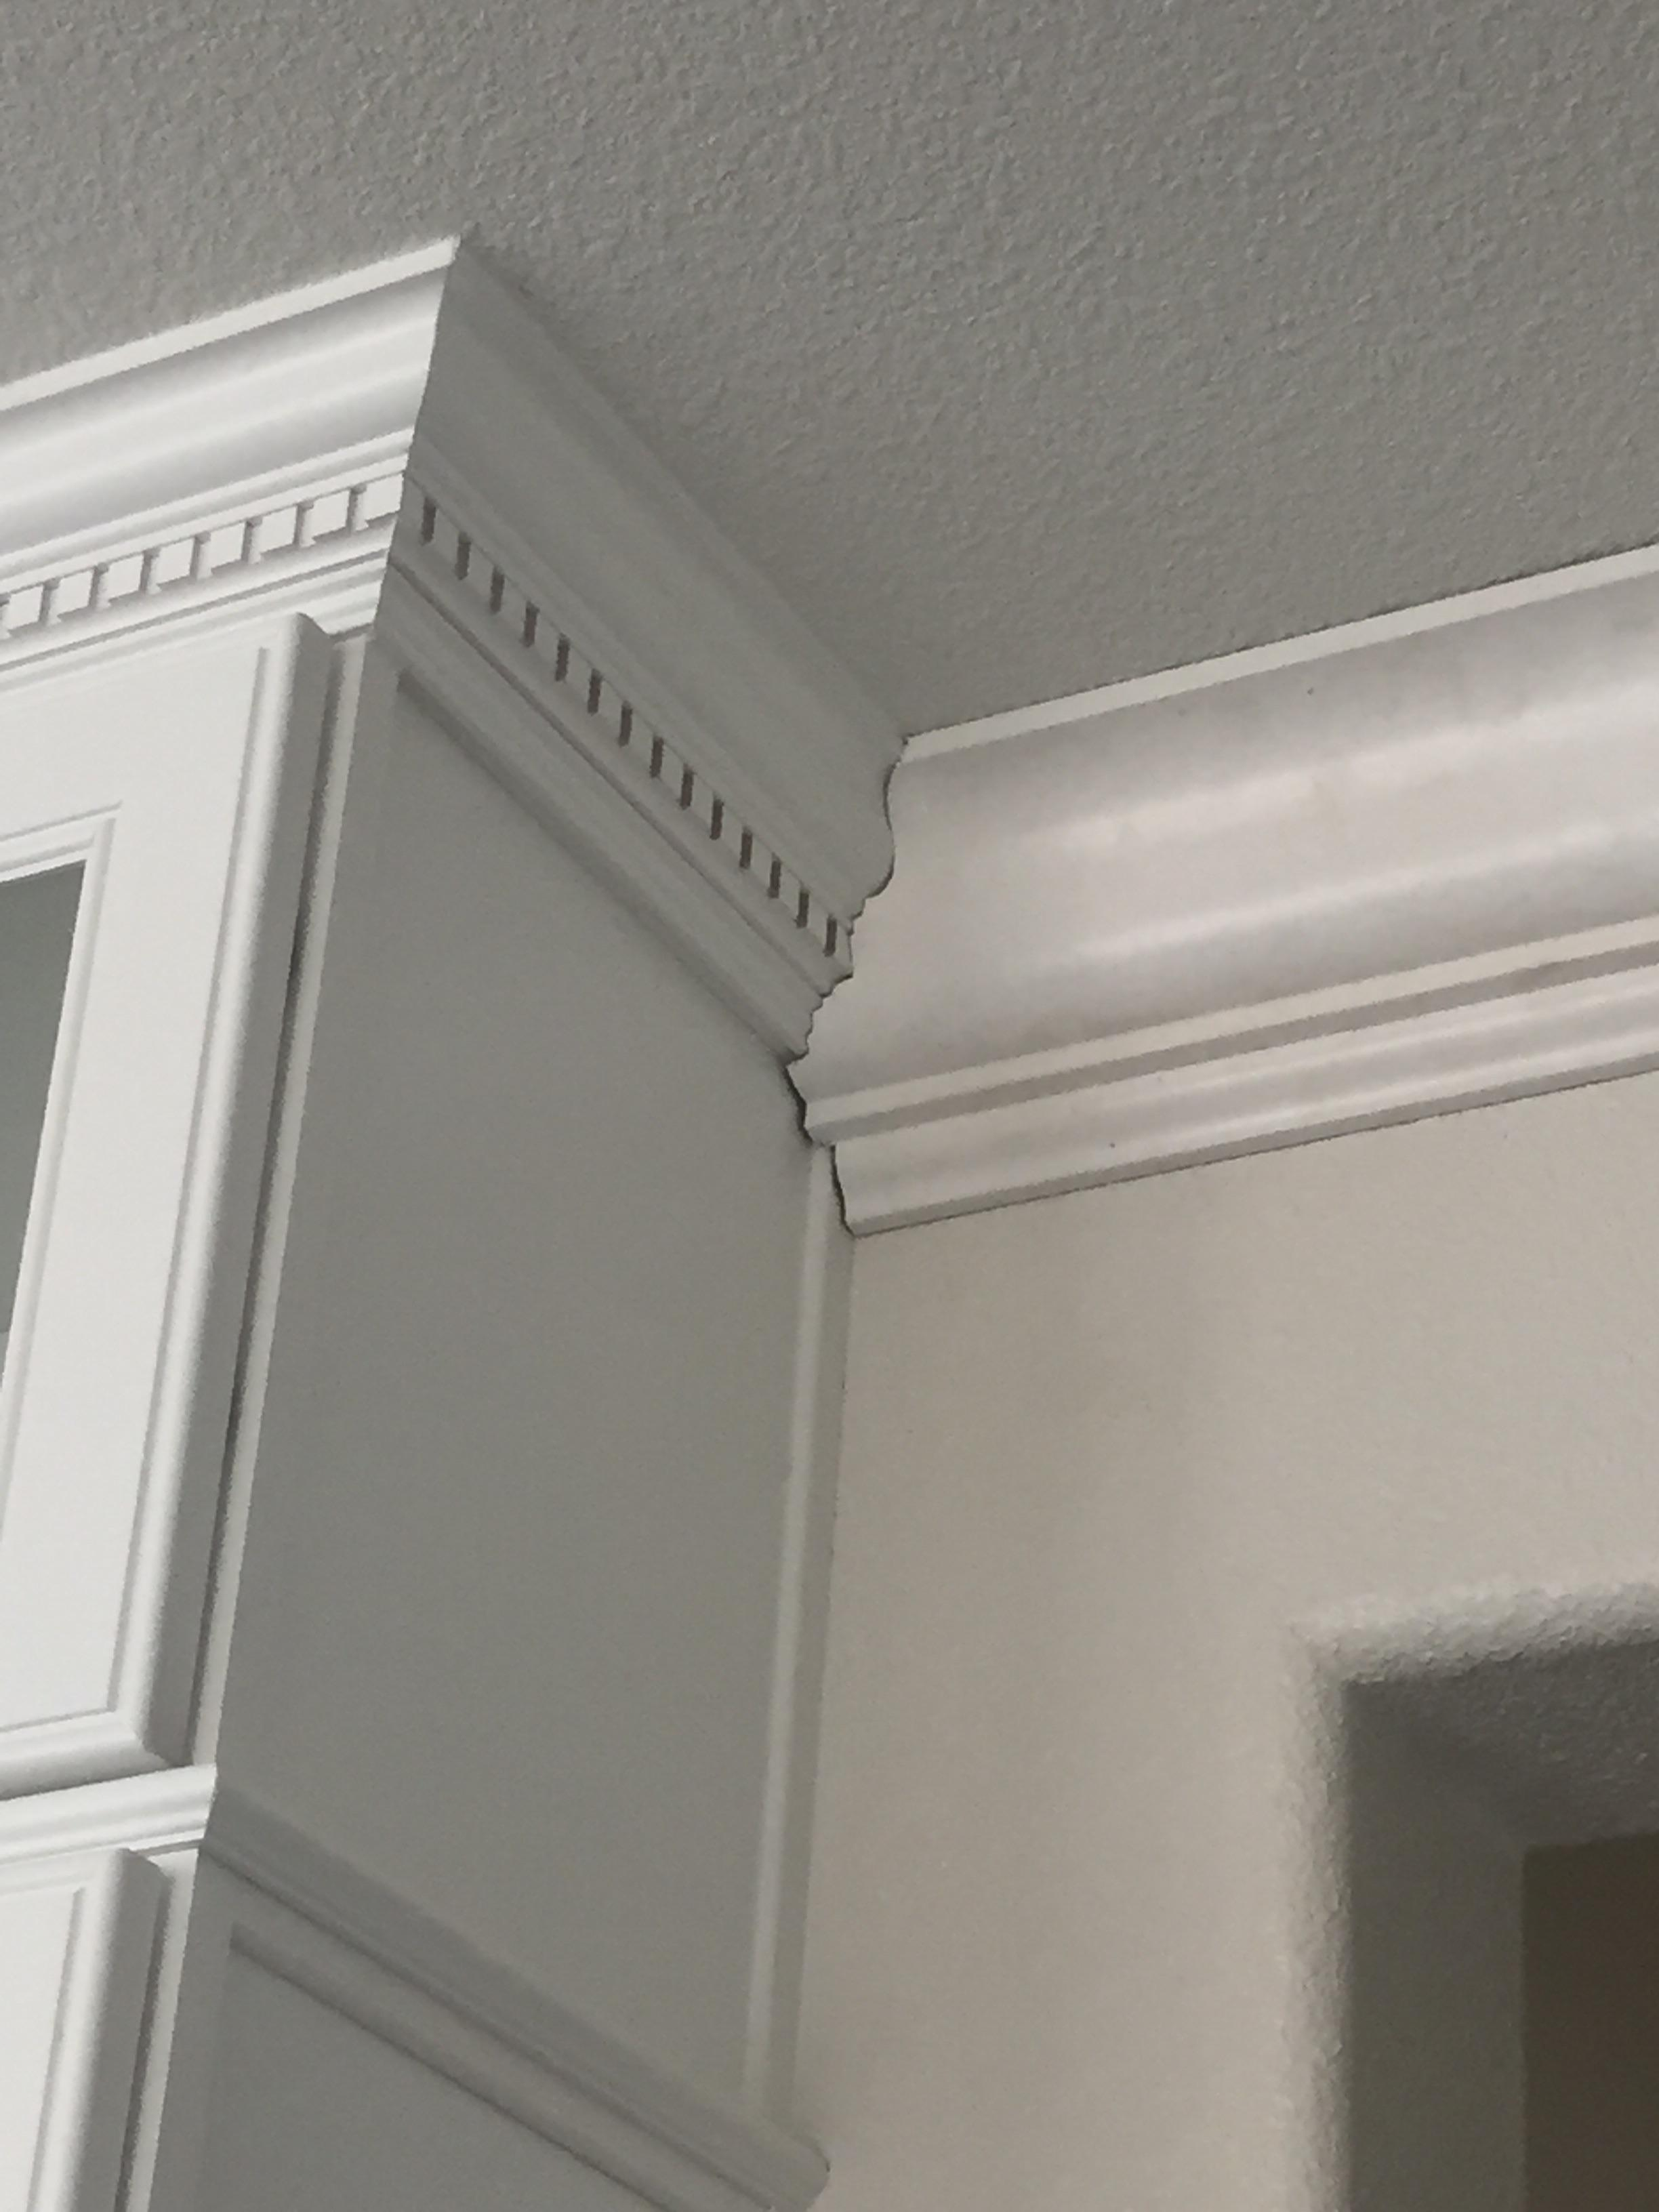 Joining 2 Different Crown Moldings Page 2 Finish